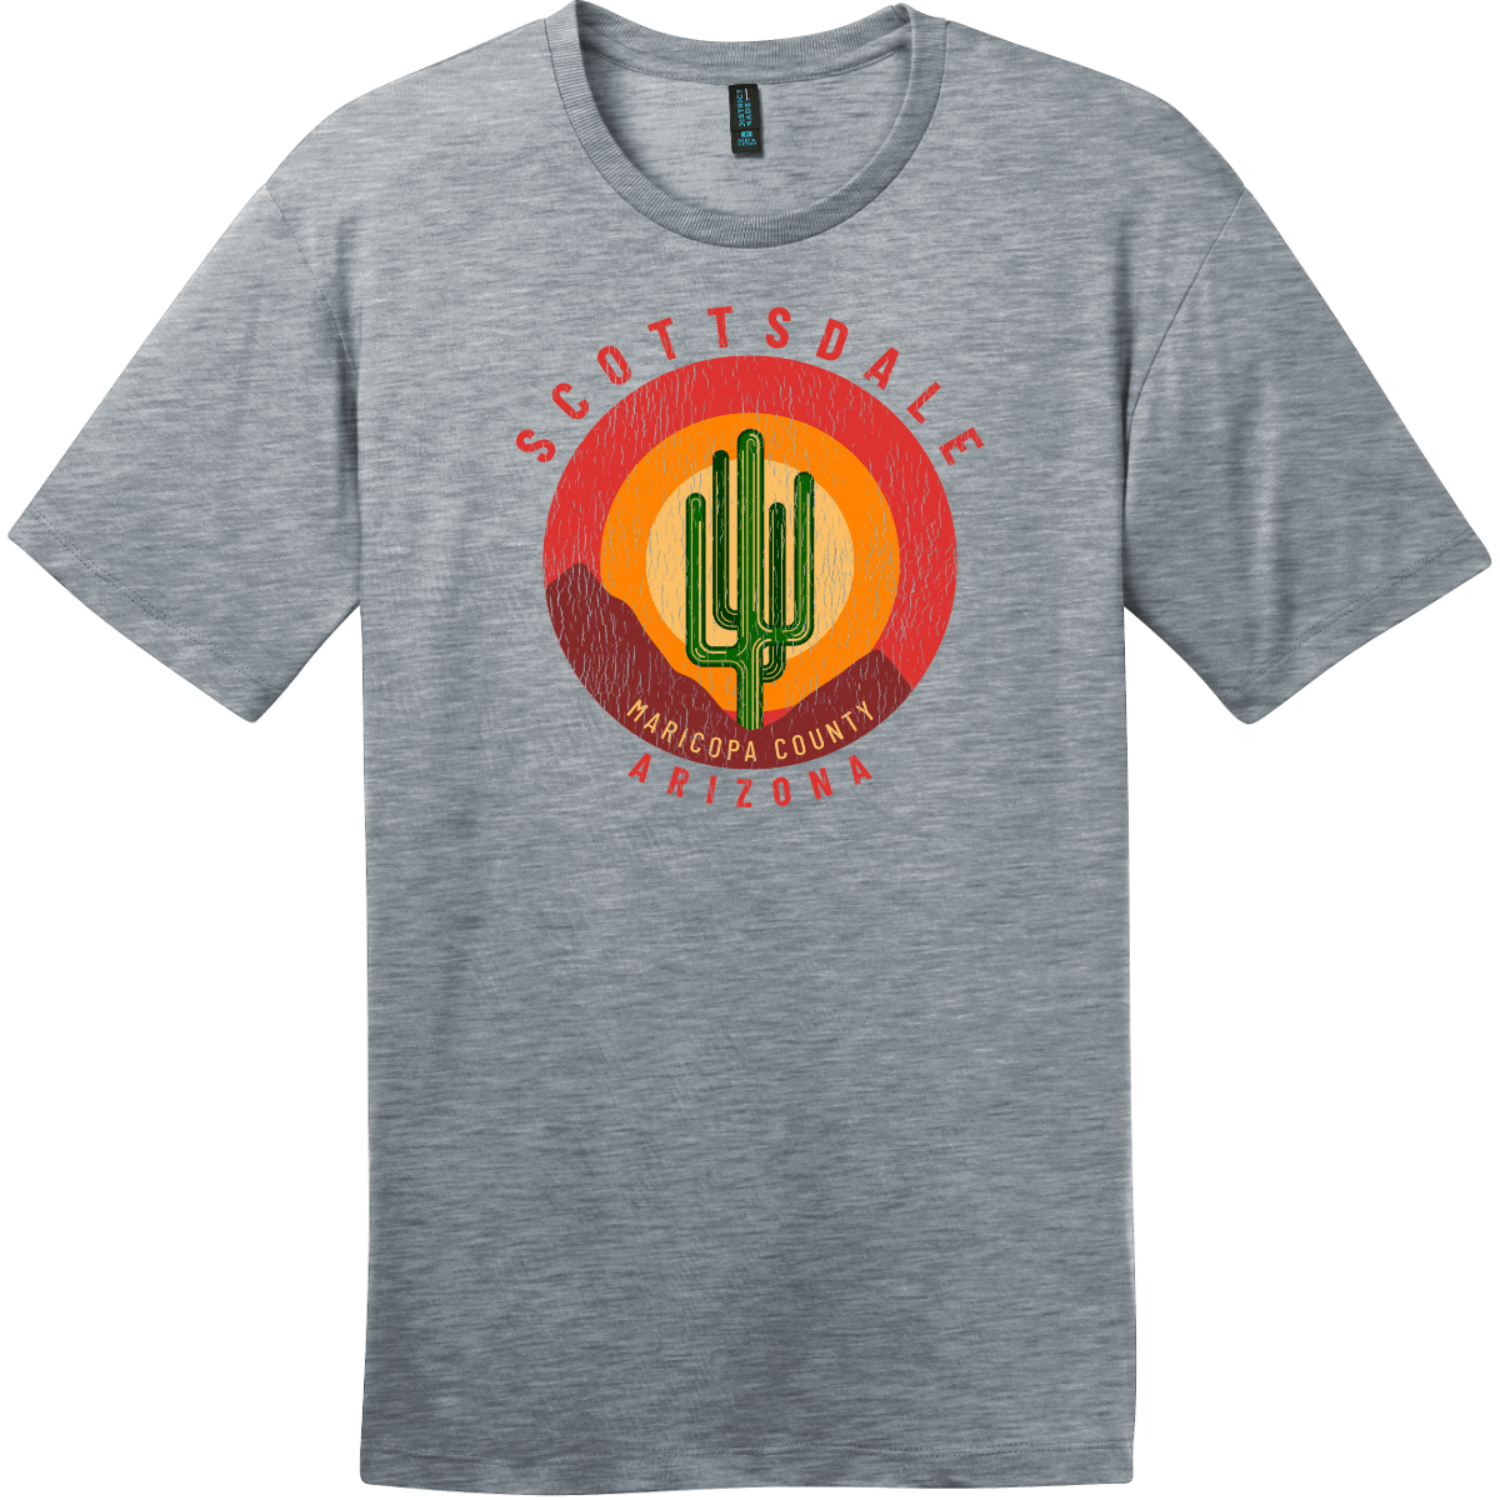 Scottsdale Arizona Cactus Mountains Retro T-Shirt Heathered Steel District Perfect Weight Tee DT104